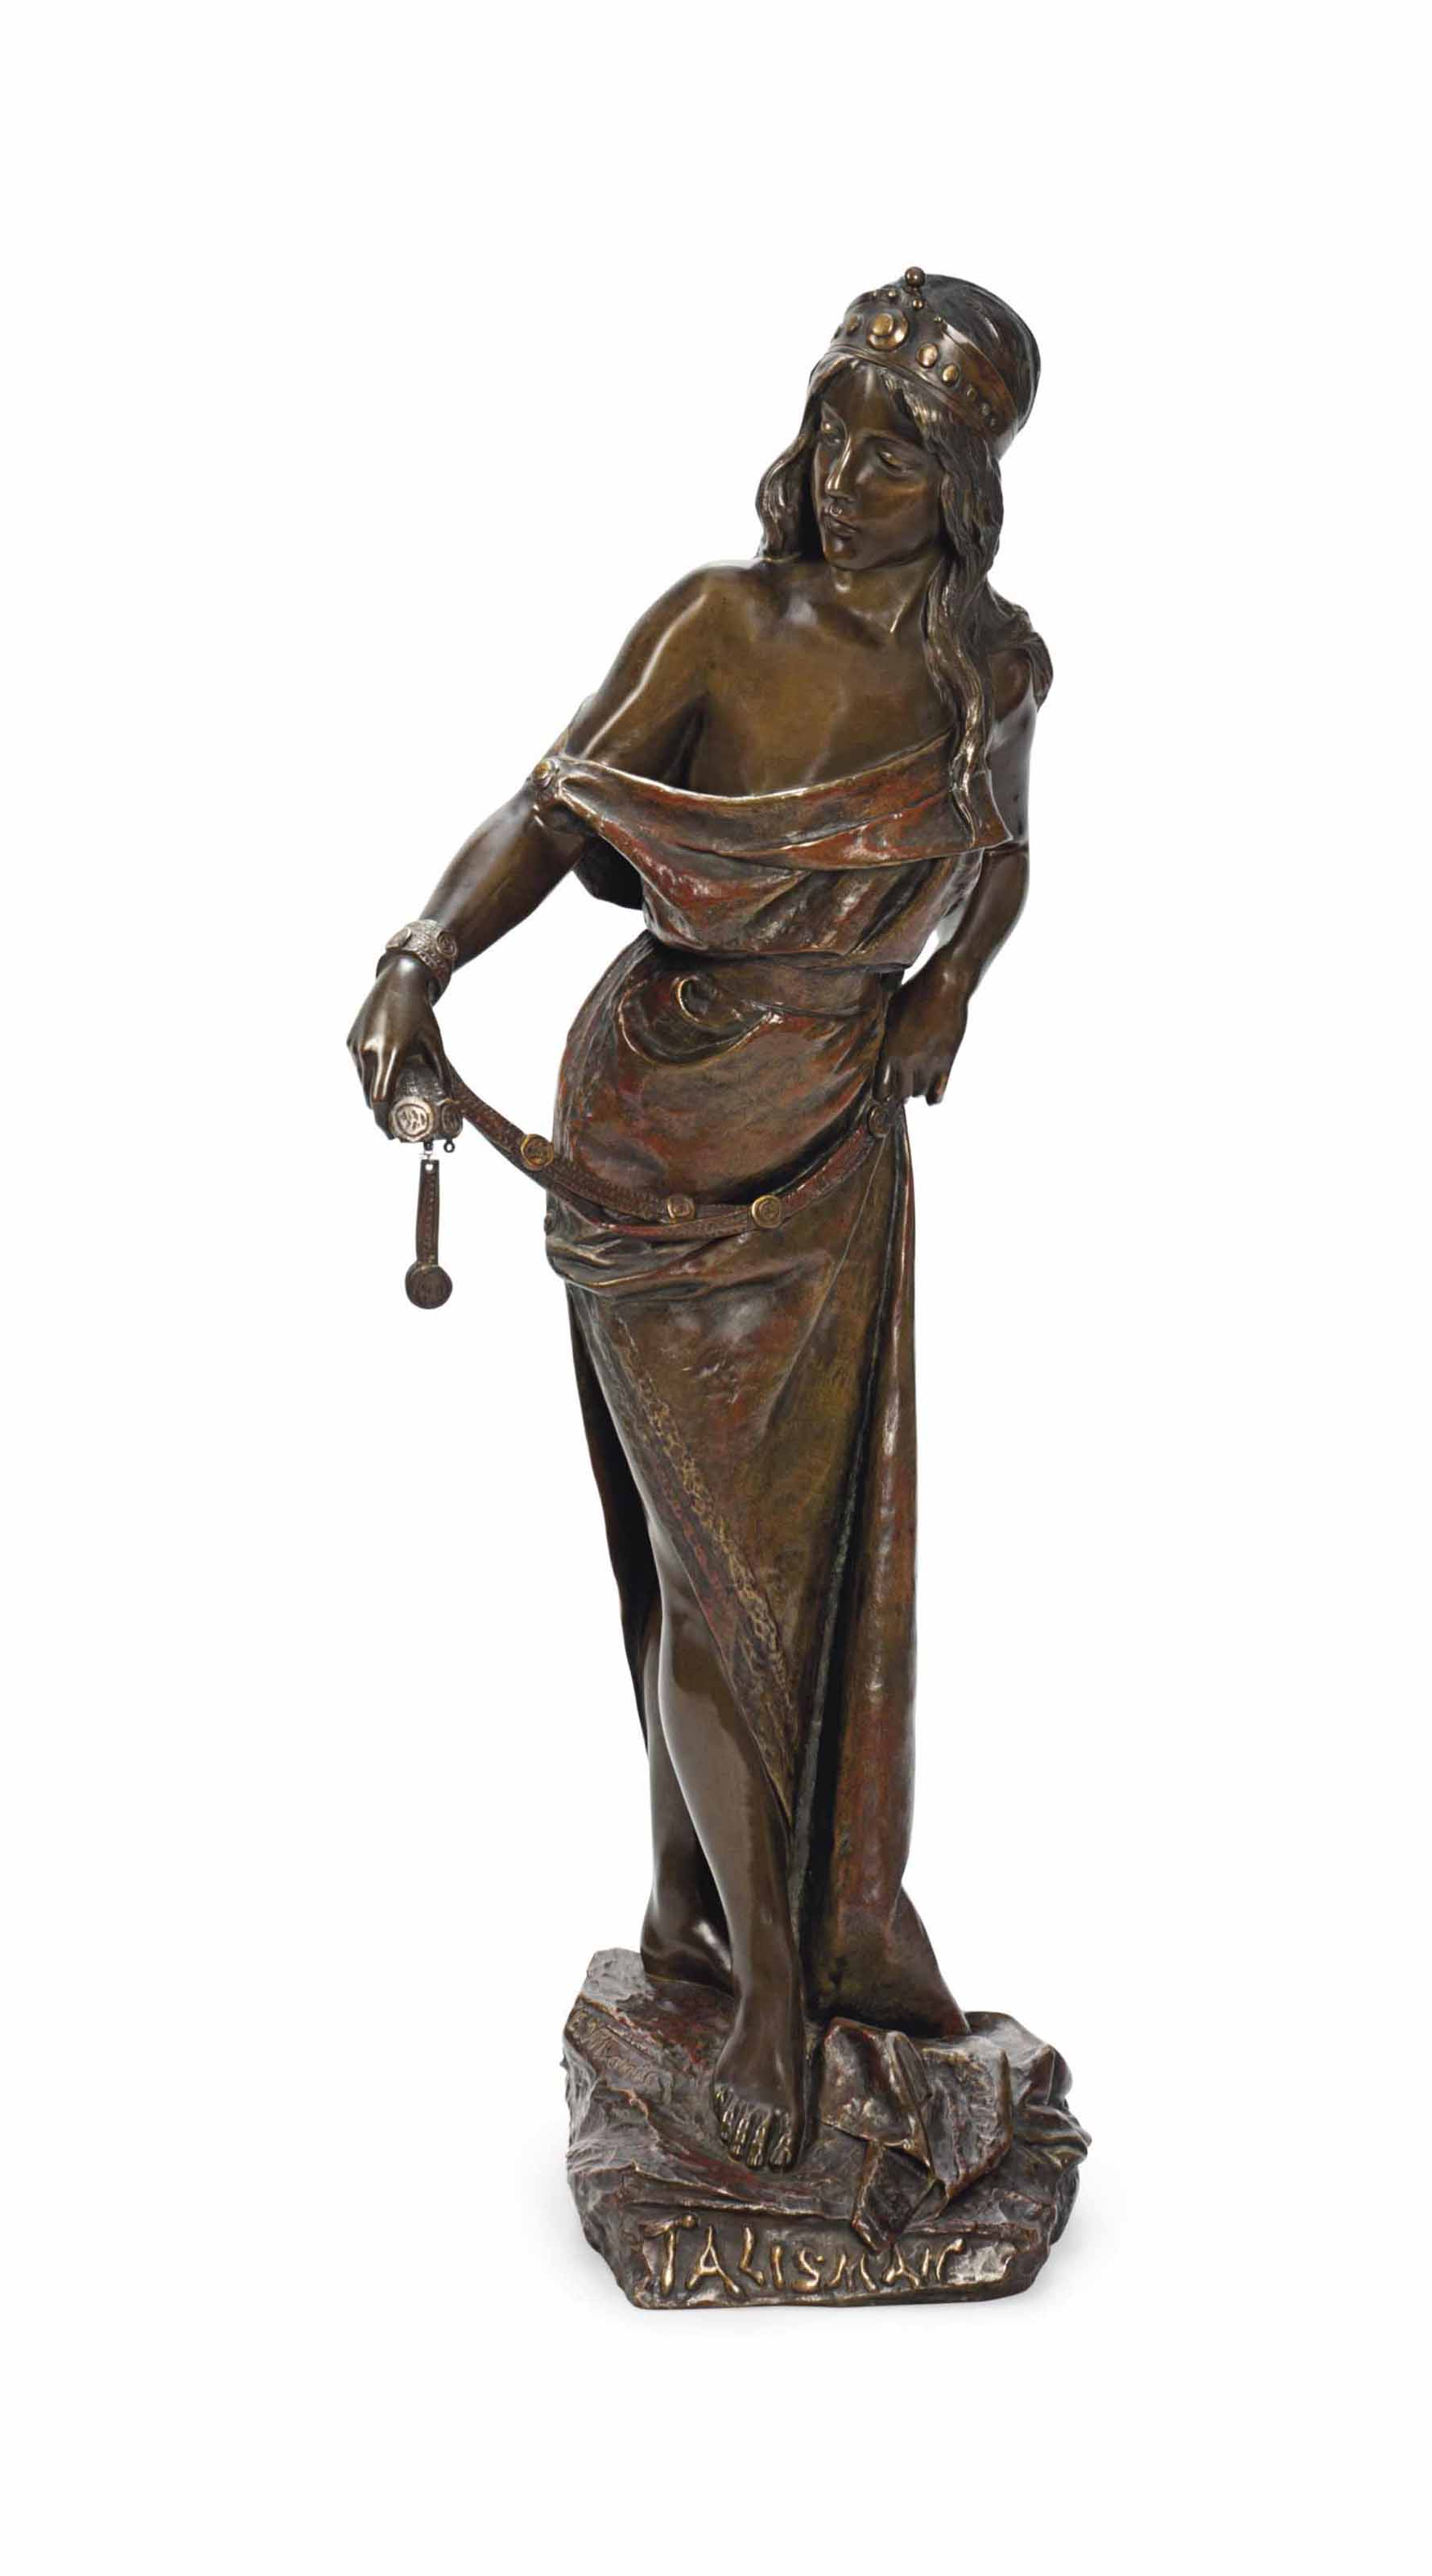 A FRENCH BRONZE FIGURE ENTITLED 'TALISMAN'